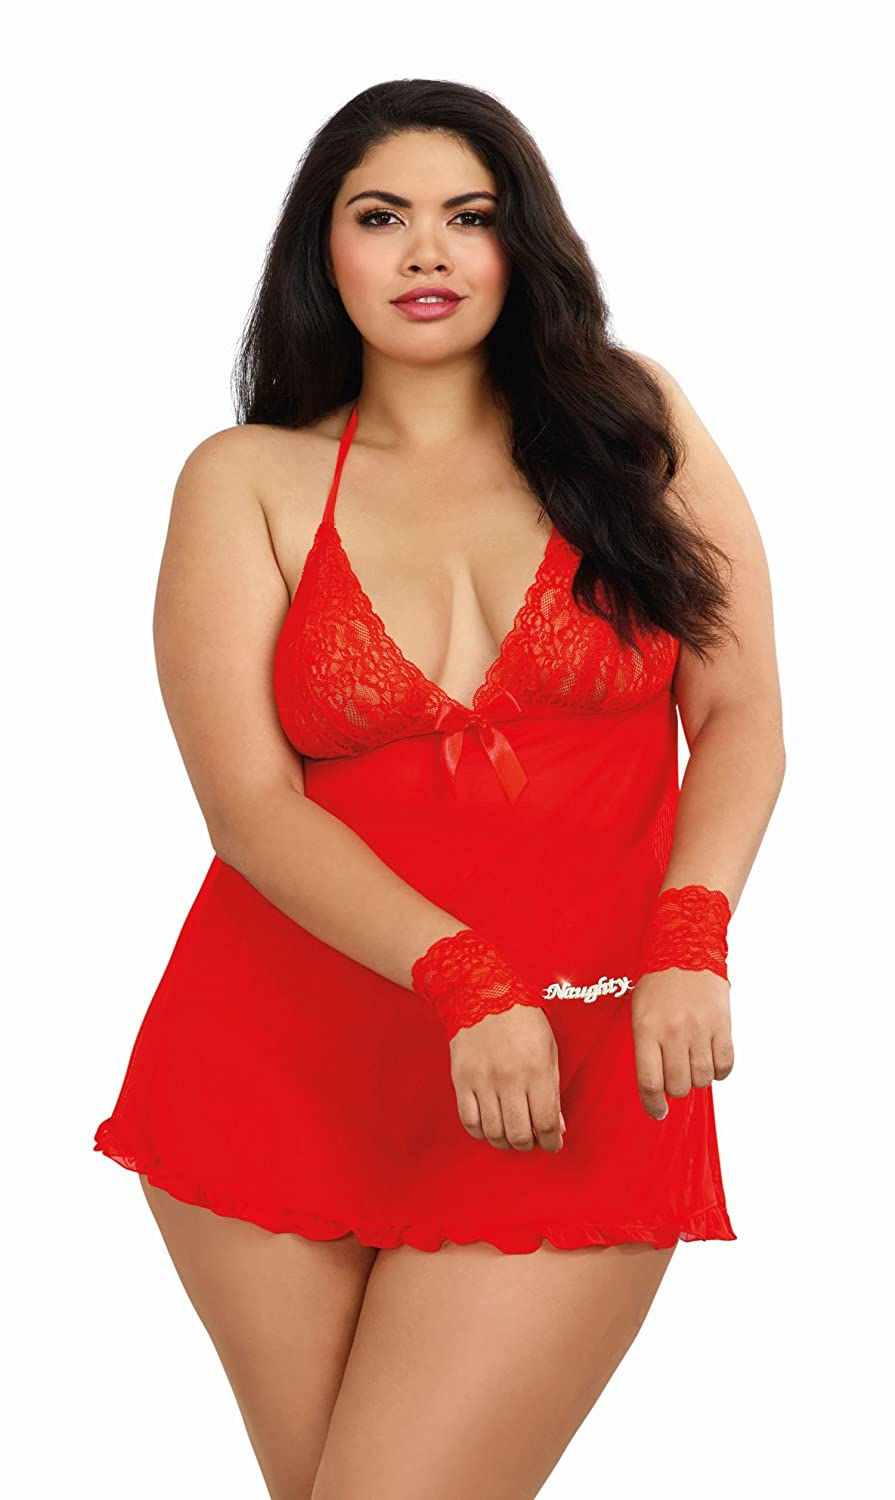 Dreamgirl Women's Plus-Size Naughty Secrets Babydoll with Wrist Restraints Red Queen One Size Dreamgirl International 9120x